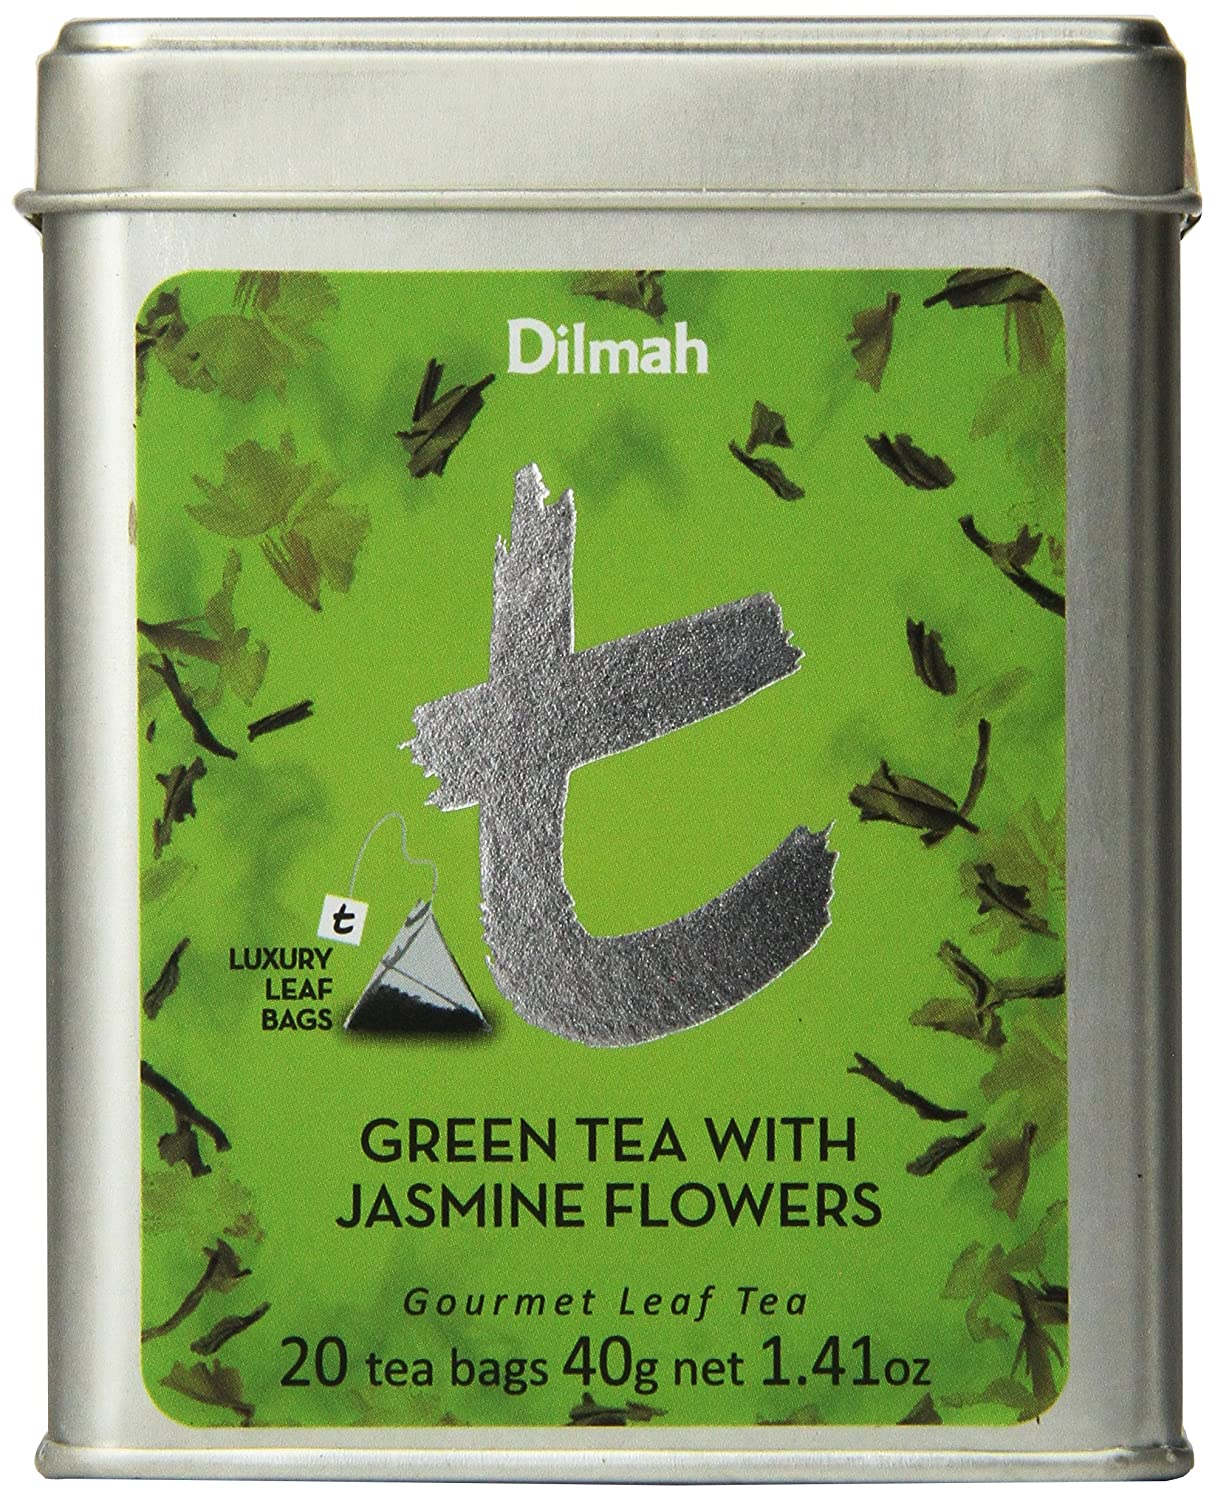 Amazon dilmah tea green tea with jasmine flowers 20 count amazon dilmah tea green tea with jasmine flowers 20 count luxury leaf teabags pack of 2 grocery tea sampler grocery gourmet food izmirmasajfo Images